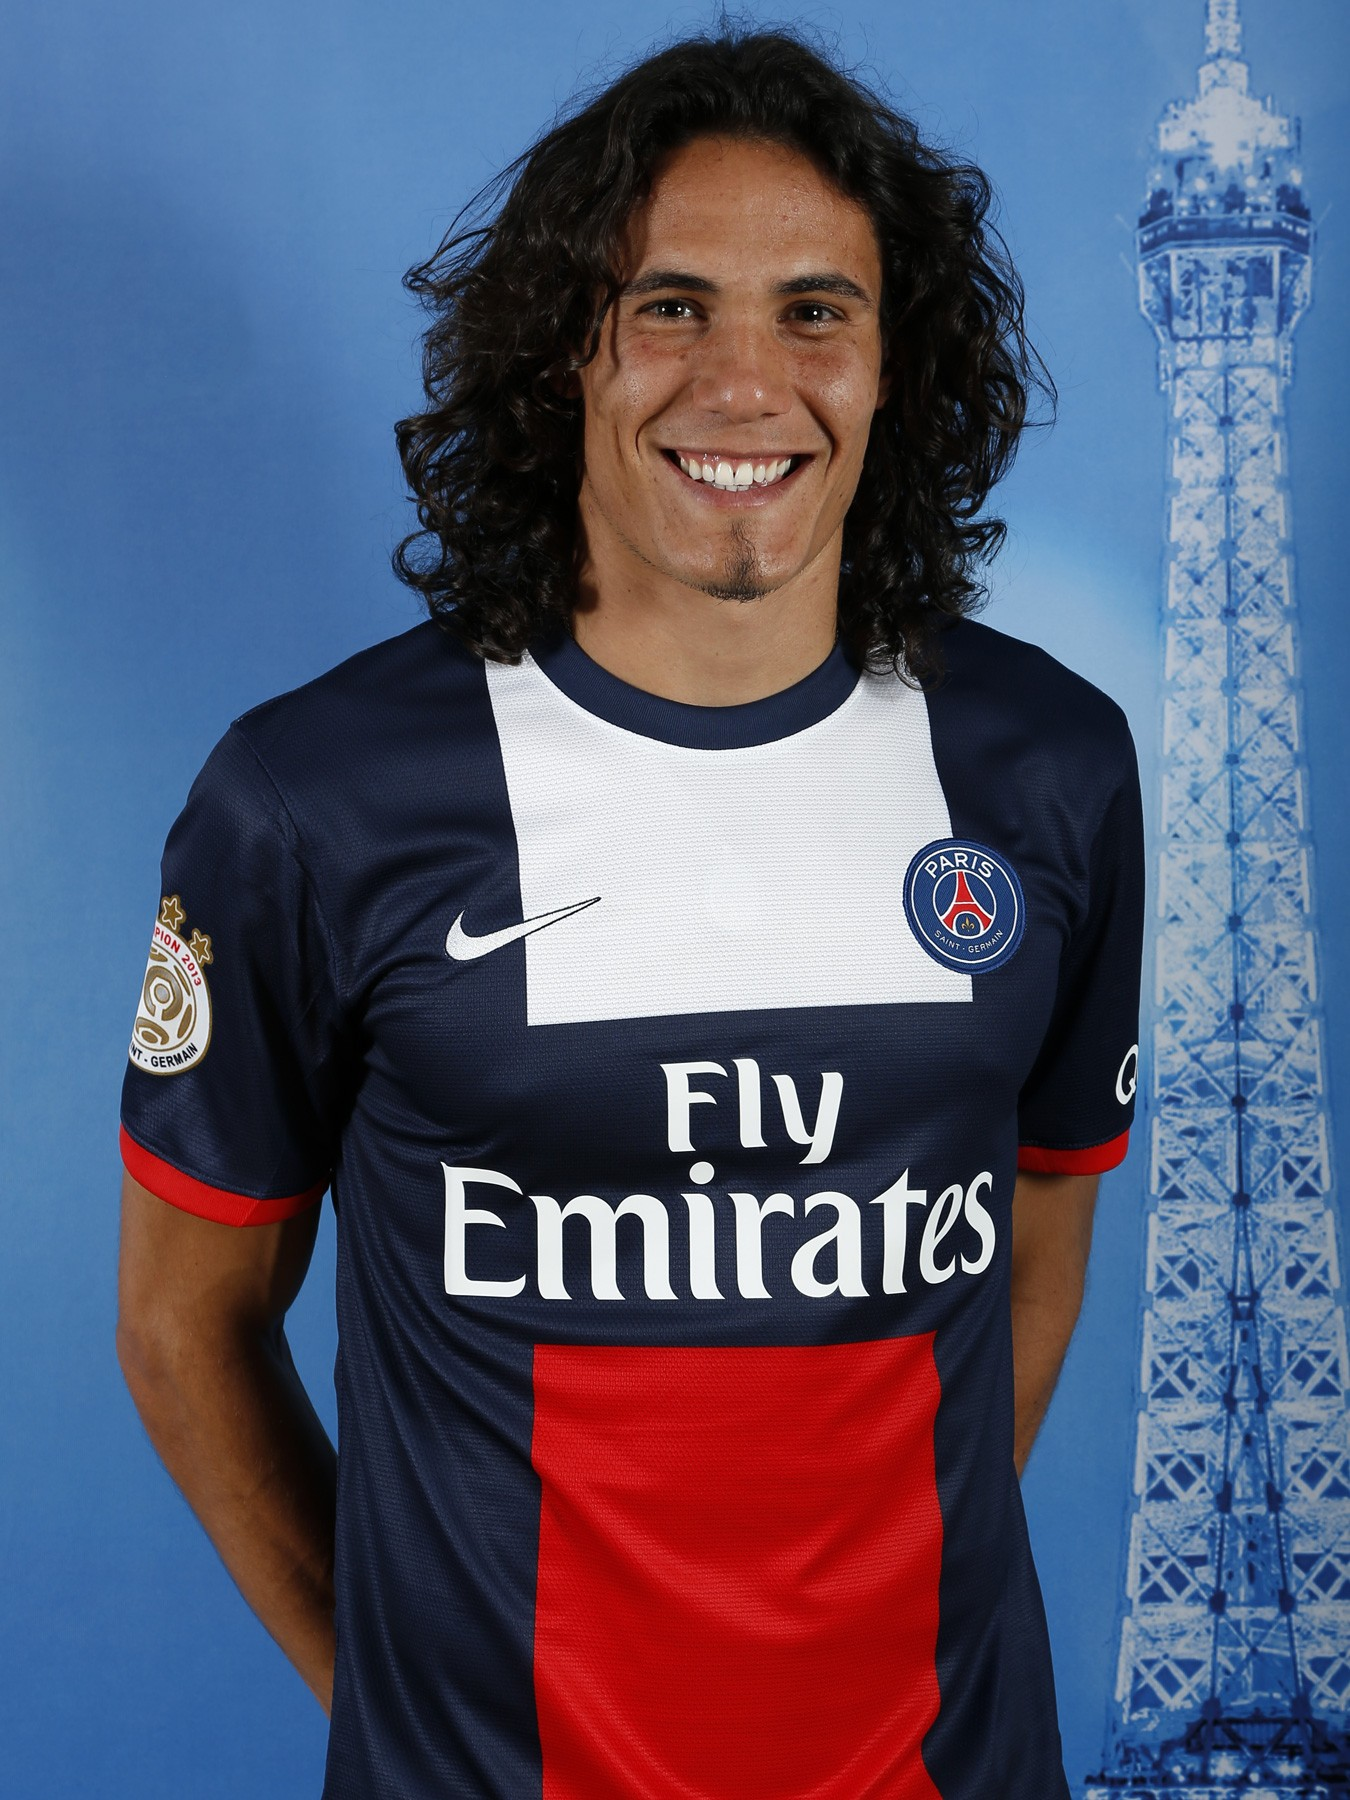 El Matador Cavani Joins Psg For A Record Transfer Fee